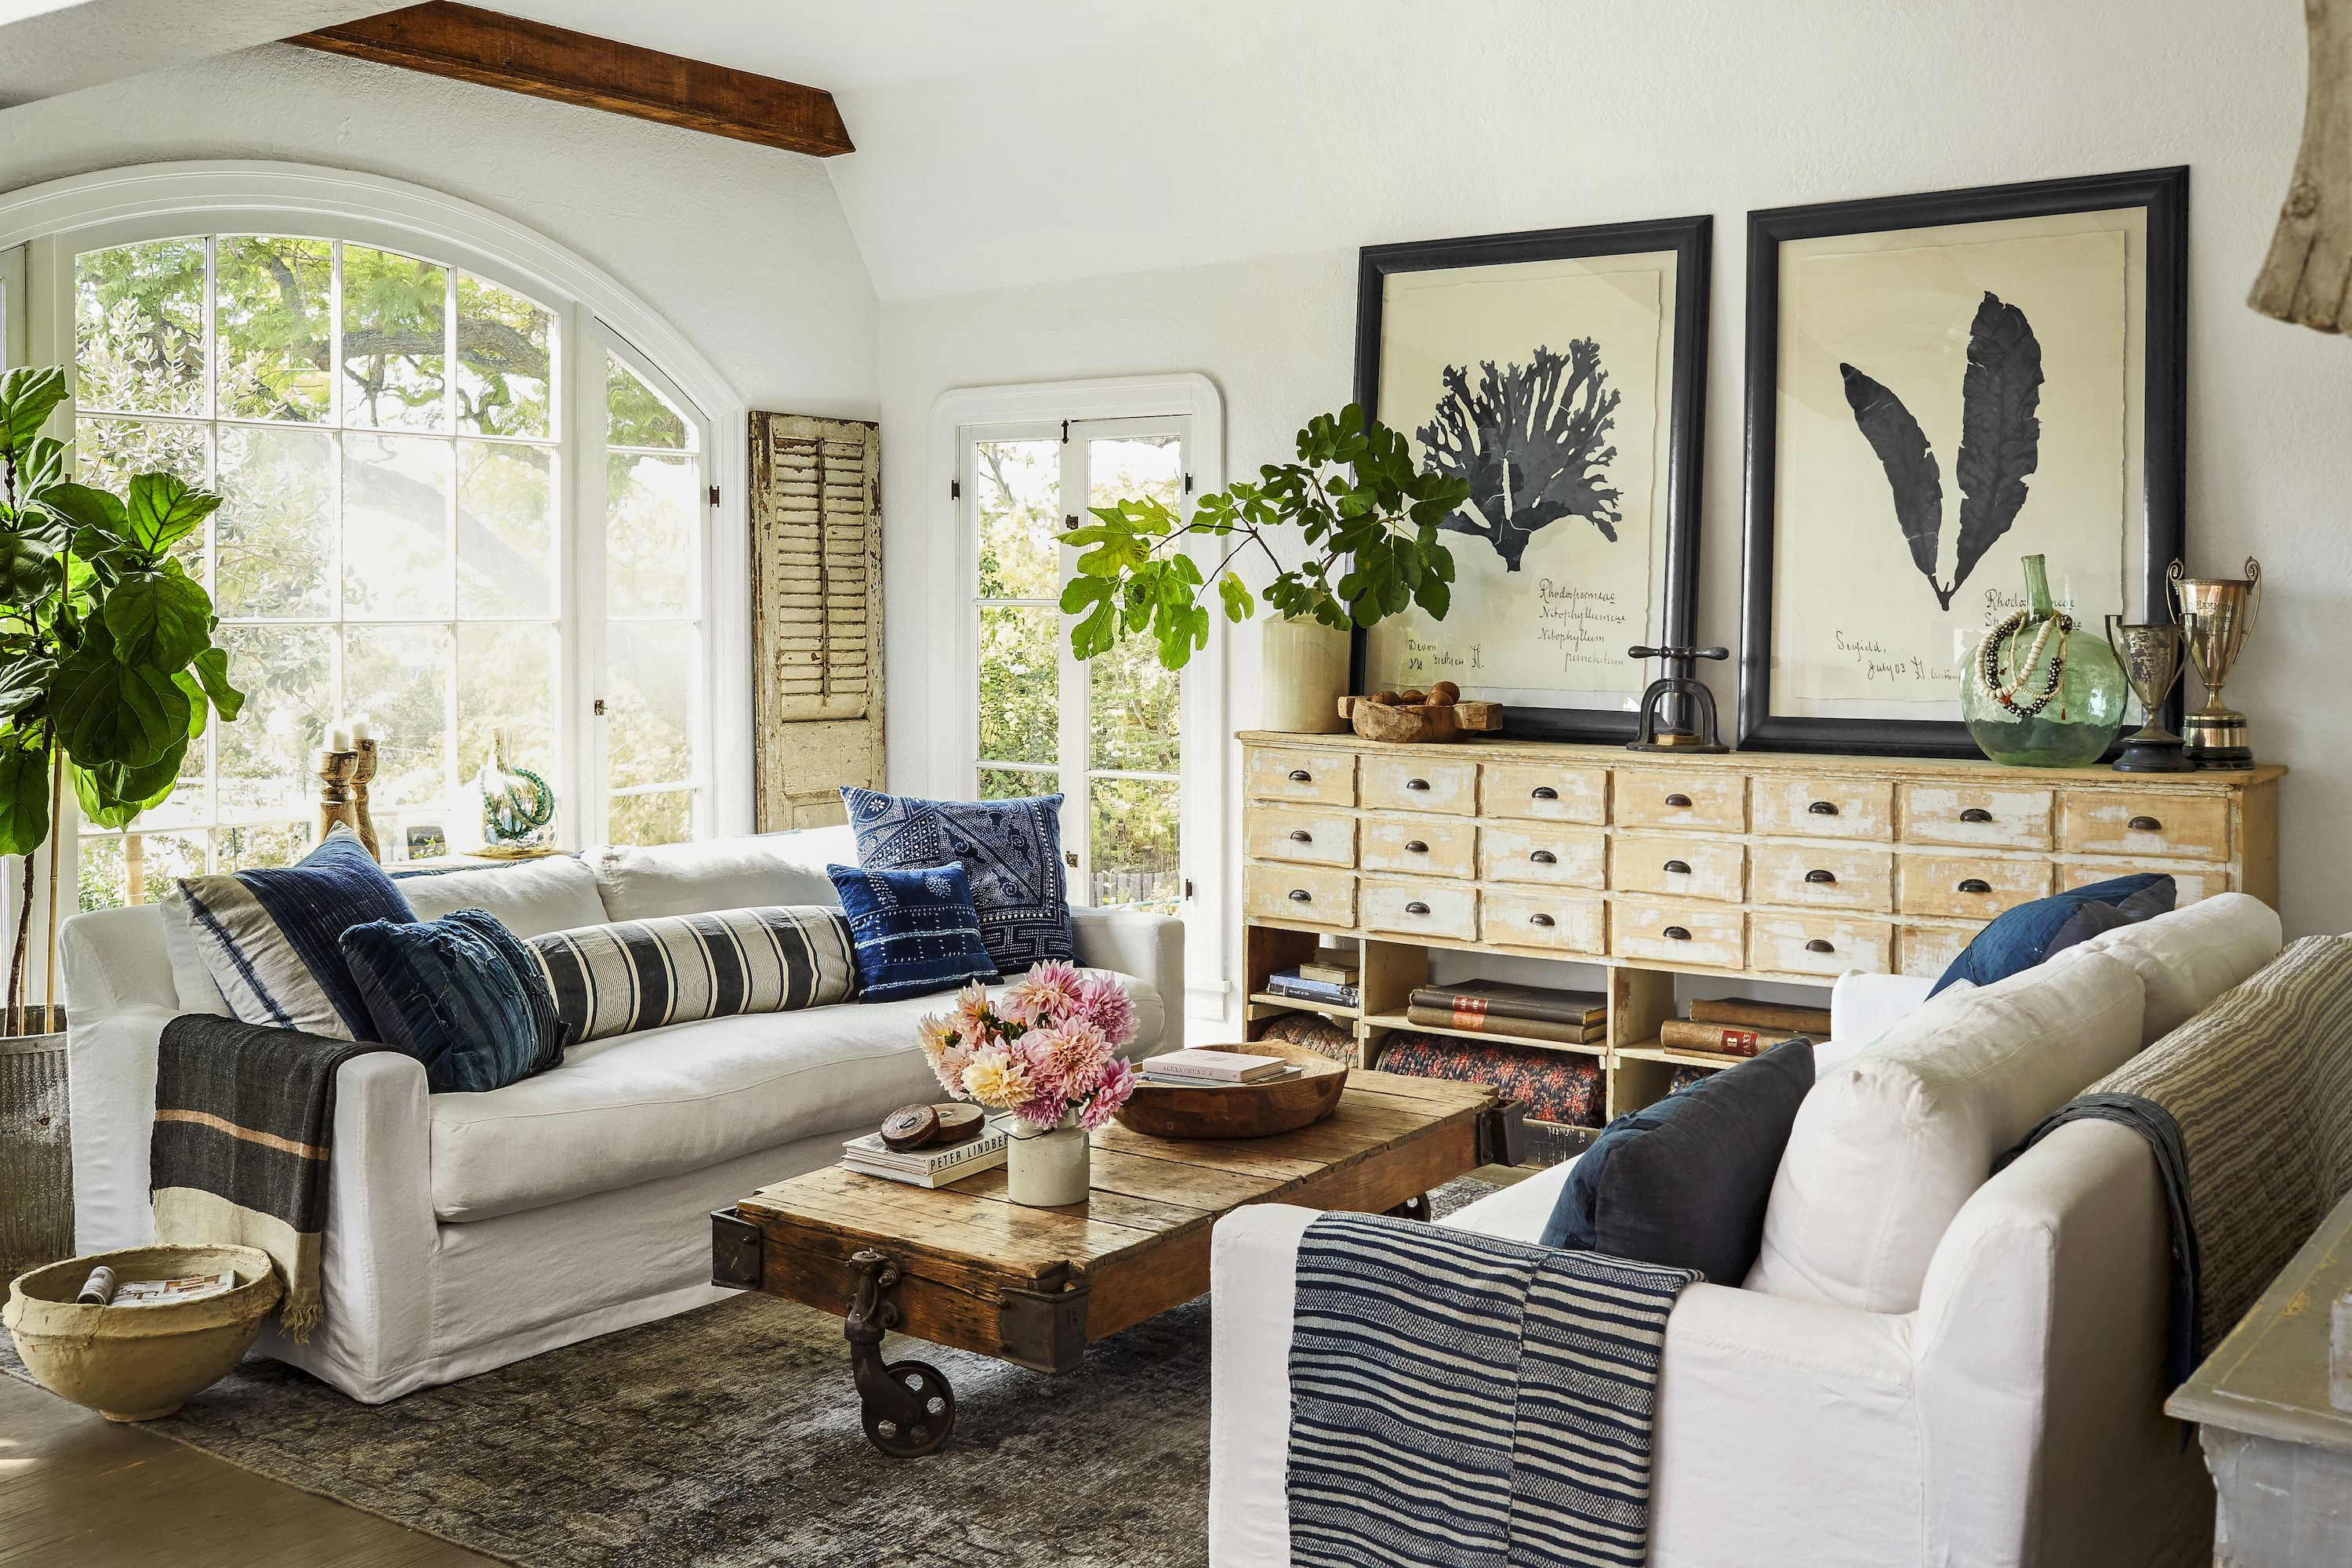 small resolution of 10 design secrets for a calm and happy home how to create a peaceful interior design peaceful interior design